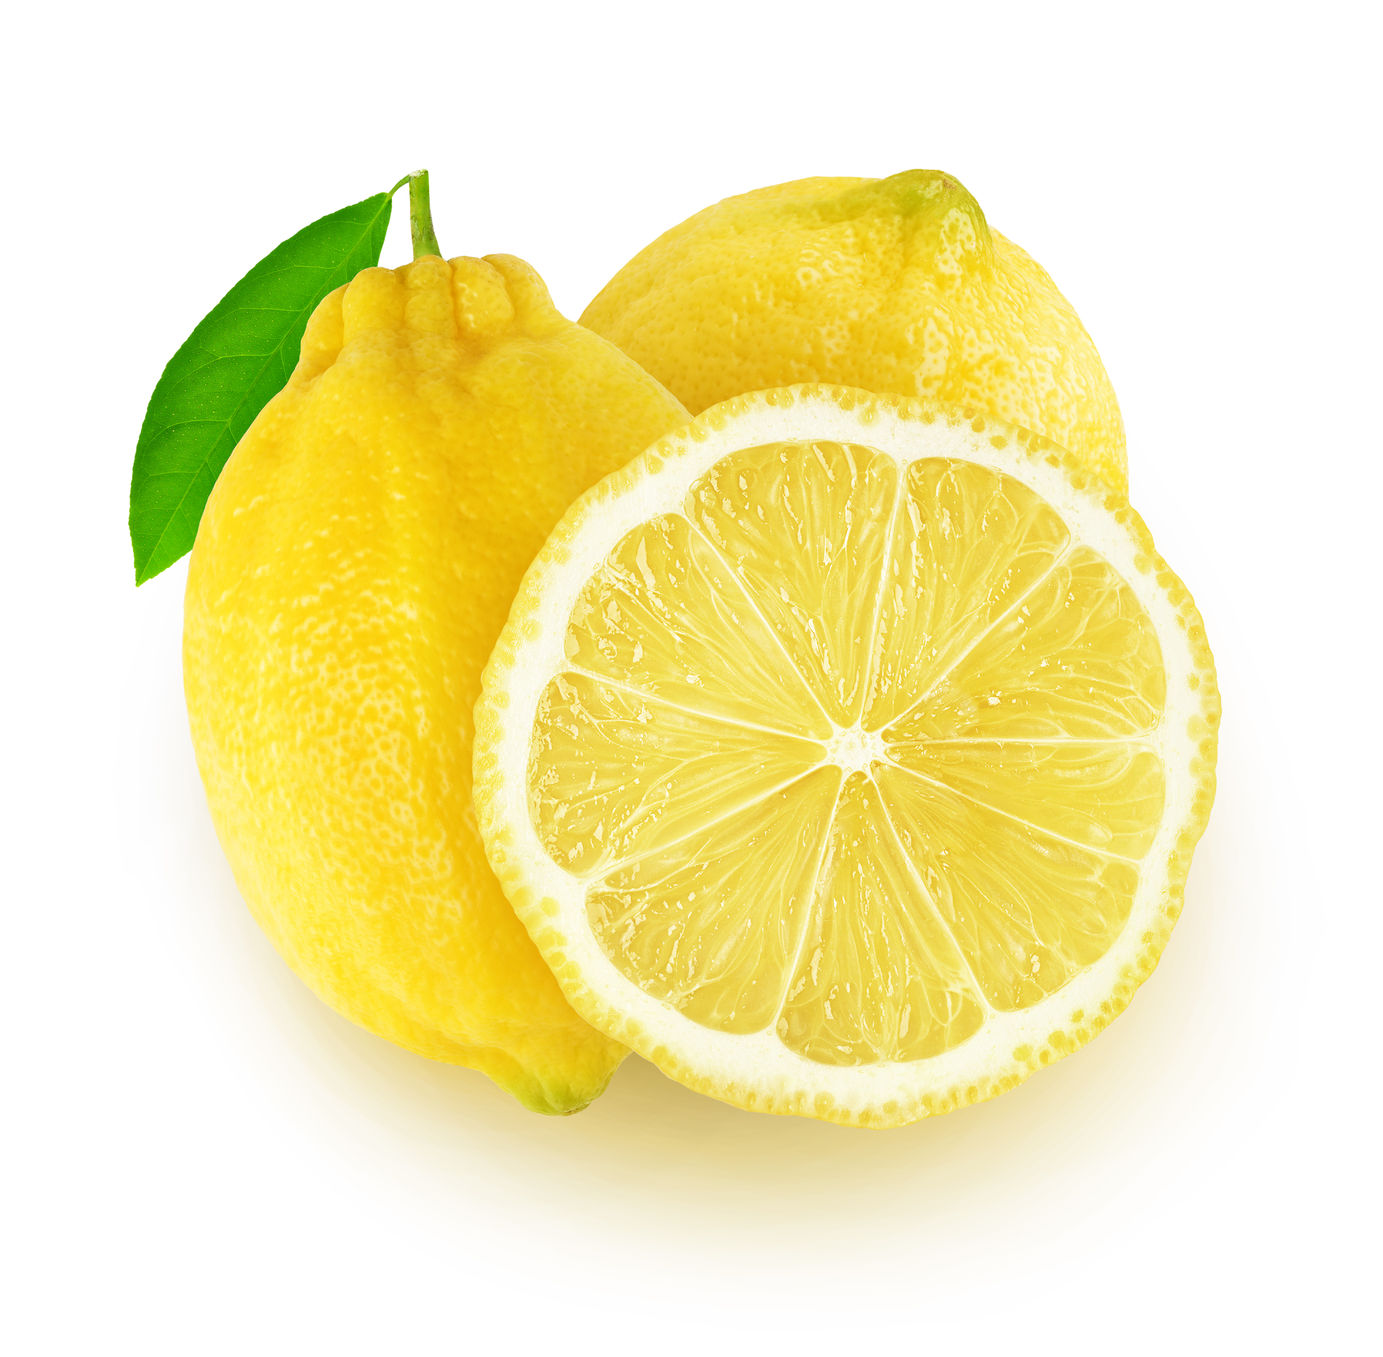 Lemon.  https://www.wocdetox.com/mistakes-people-make.html